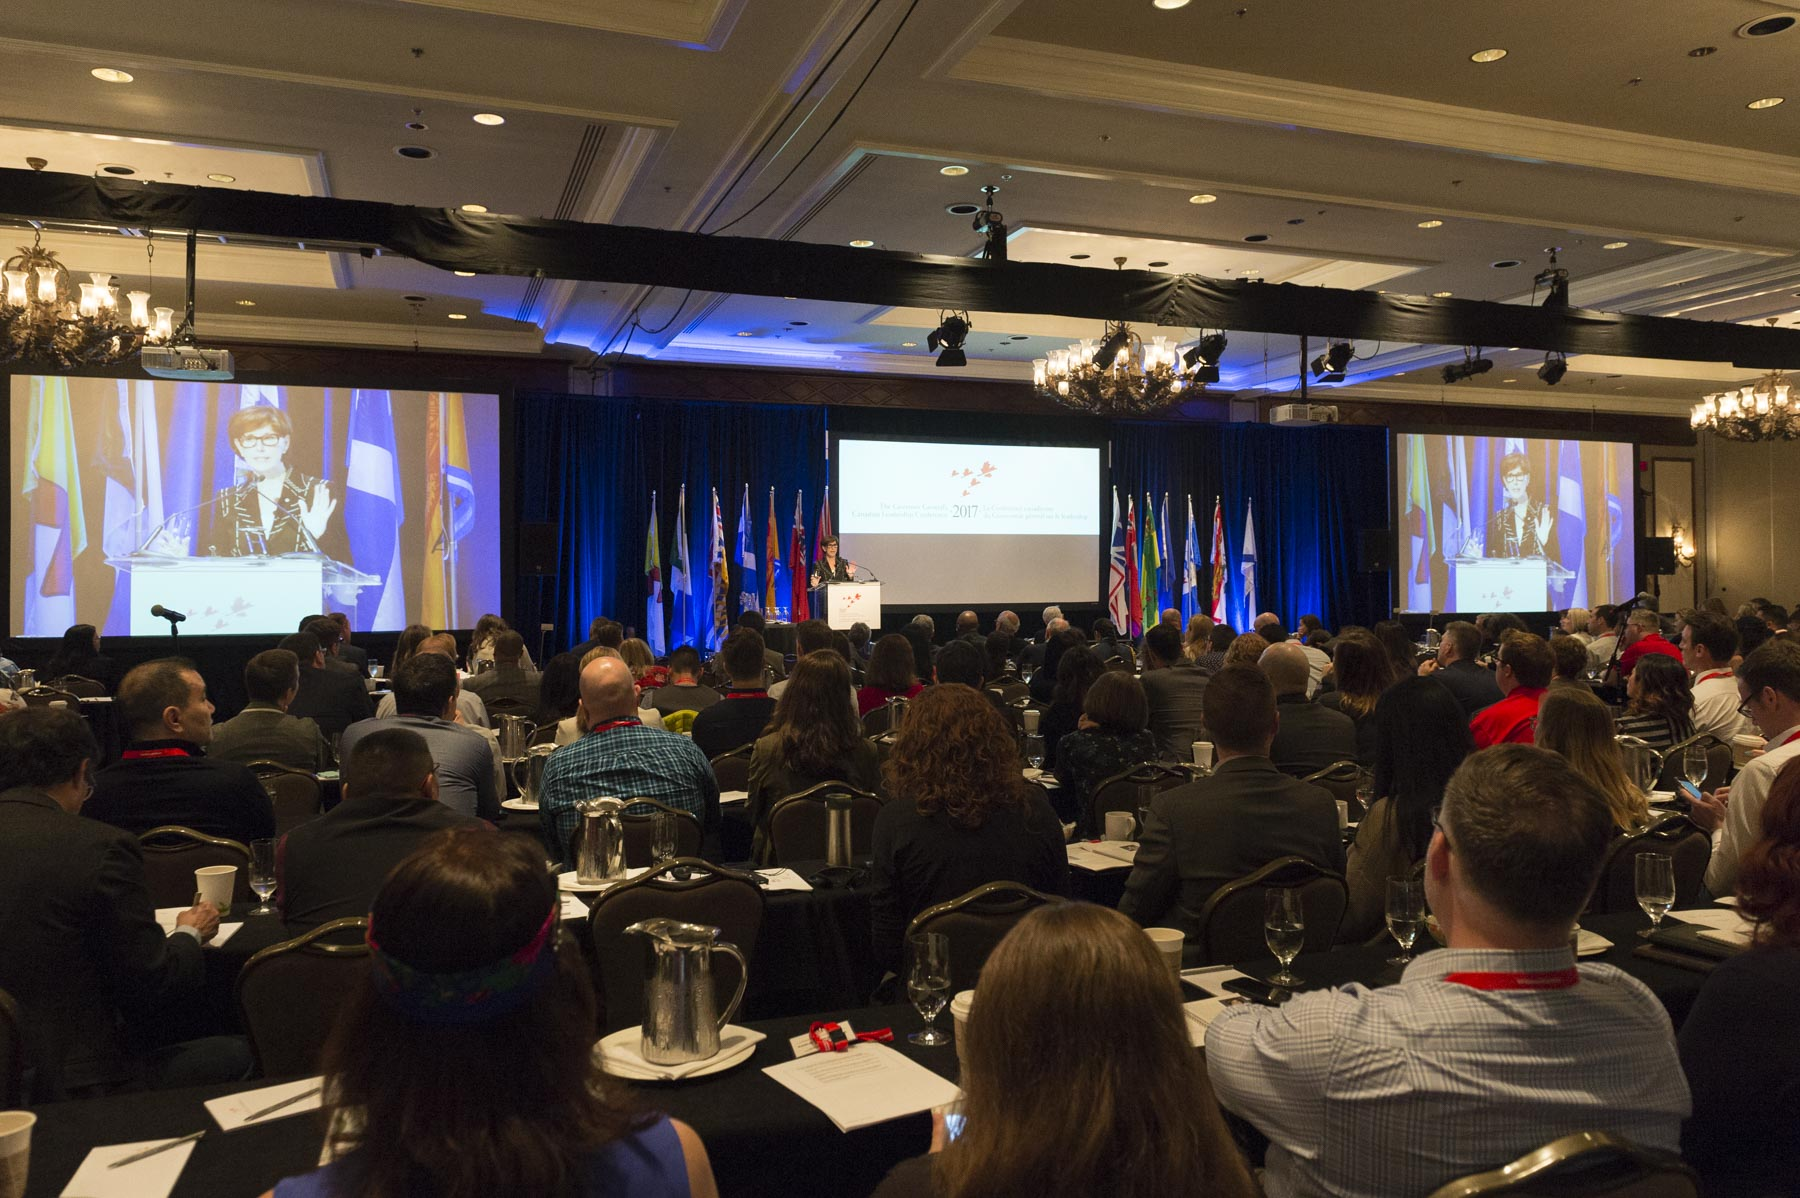 Two hundred and fifty Canadians from across the country are taking part in this Conference.